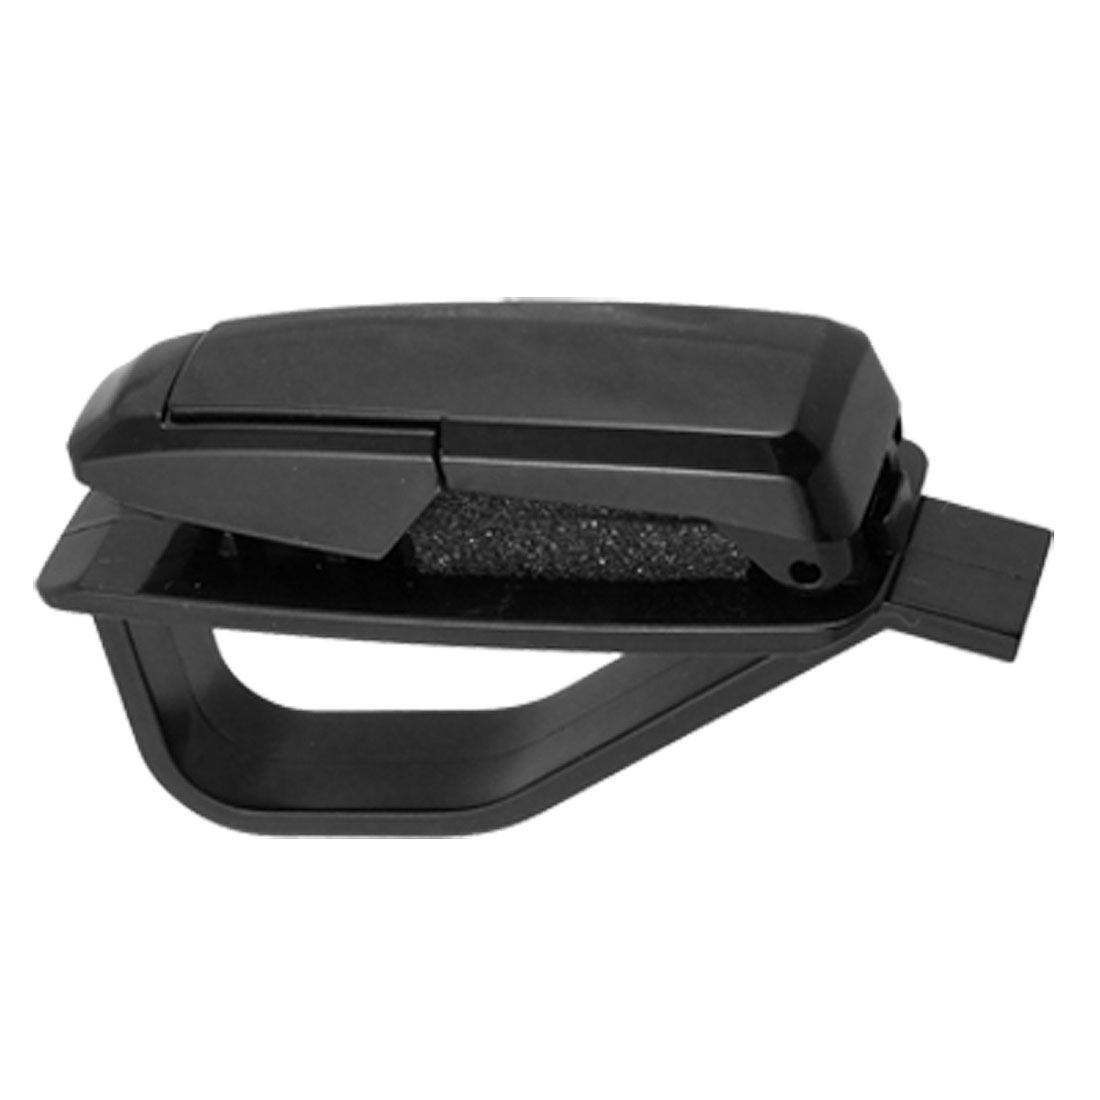 Black Plastic Car Vehicle Sunglasses Eyeglasses Clip Holder